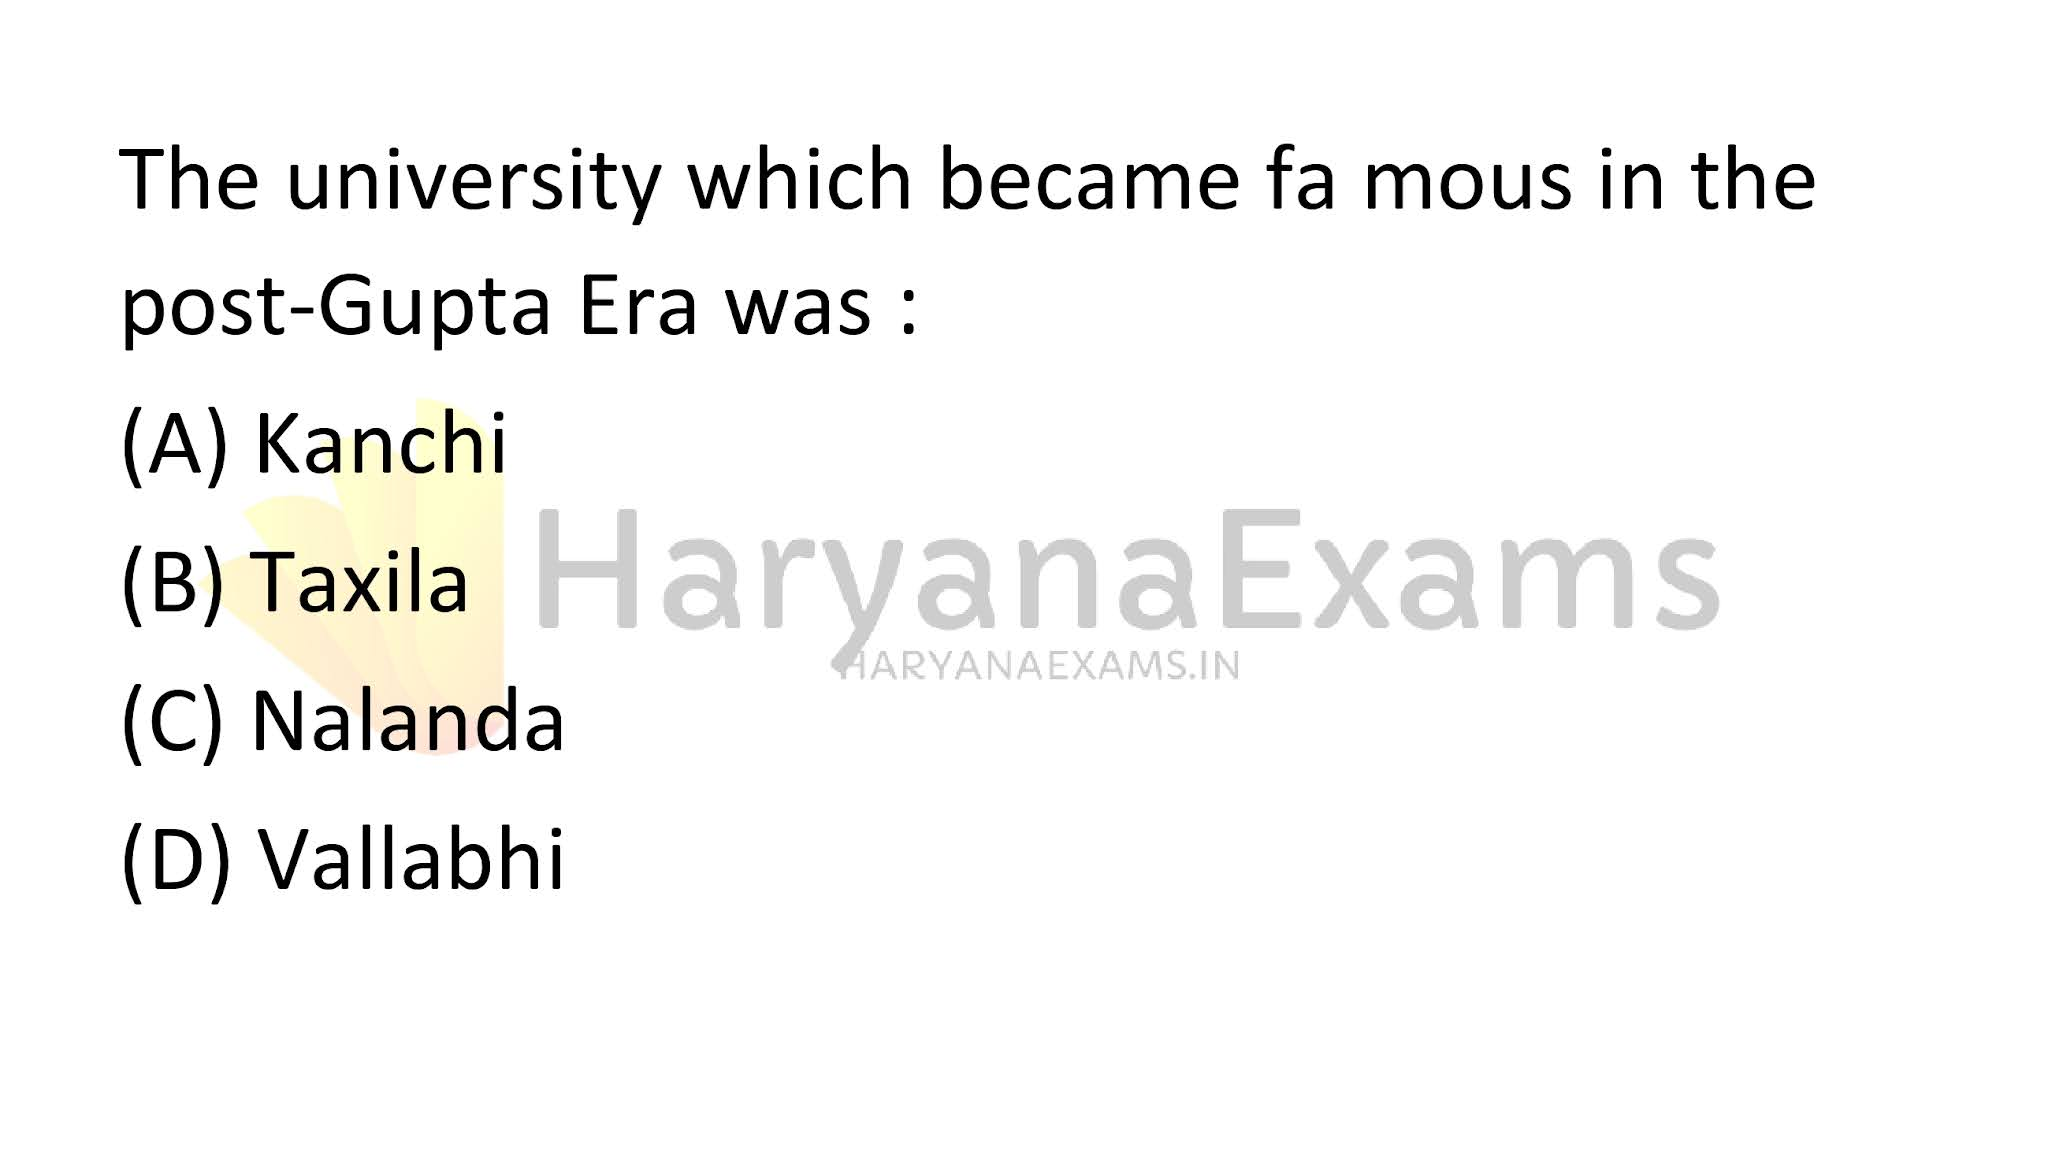 The university which became famous in the post-Gupta Era was :